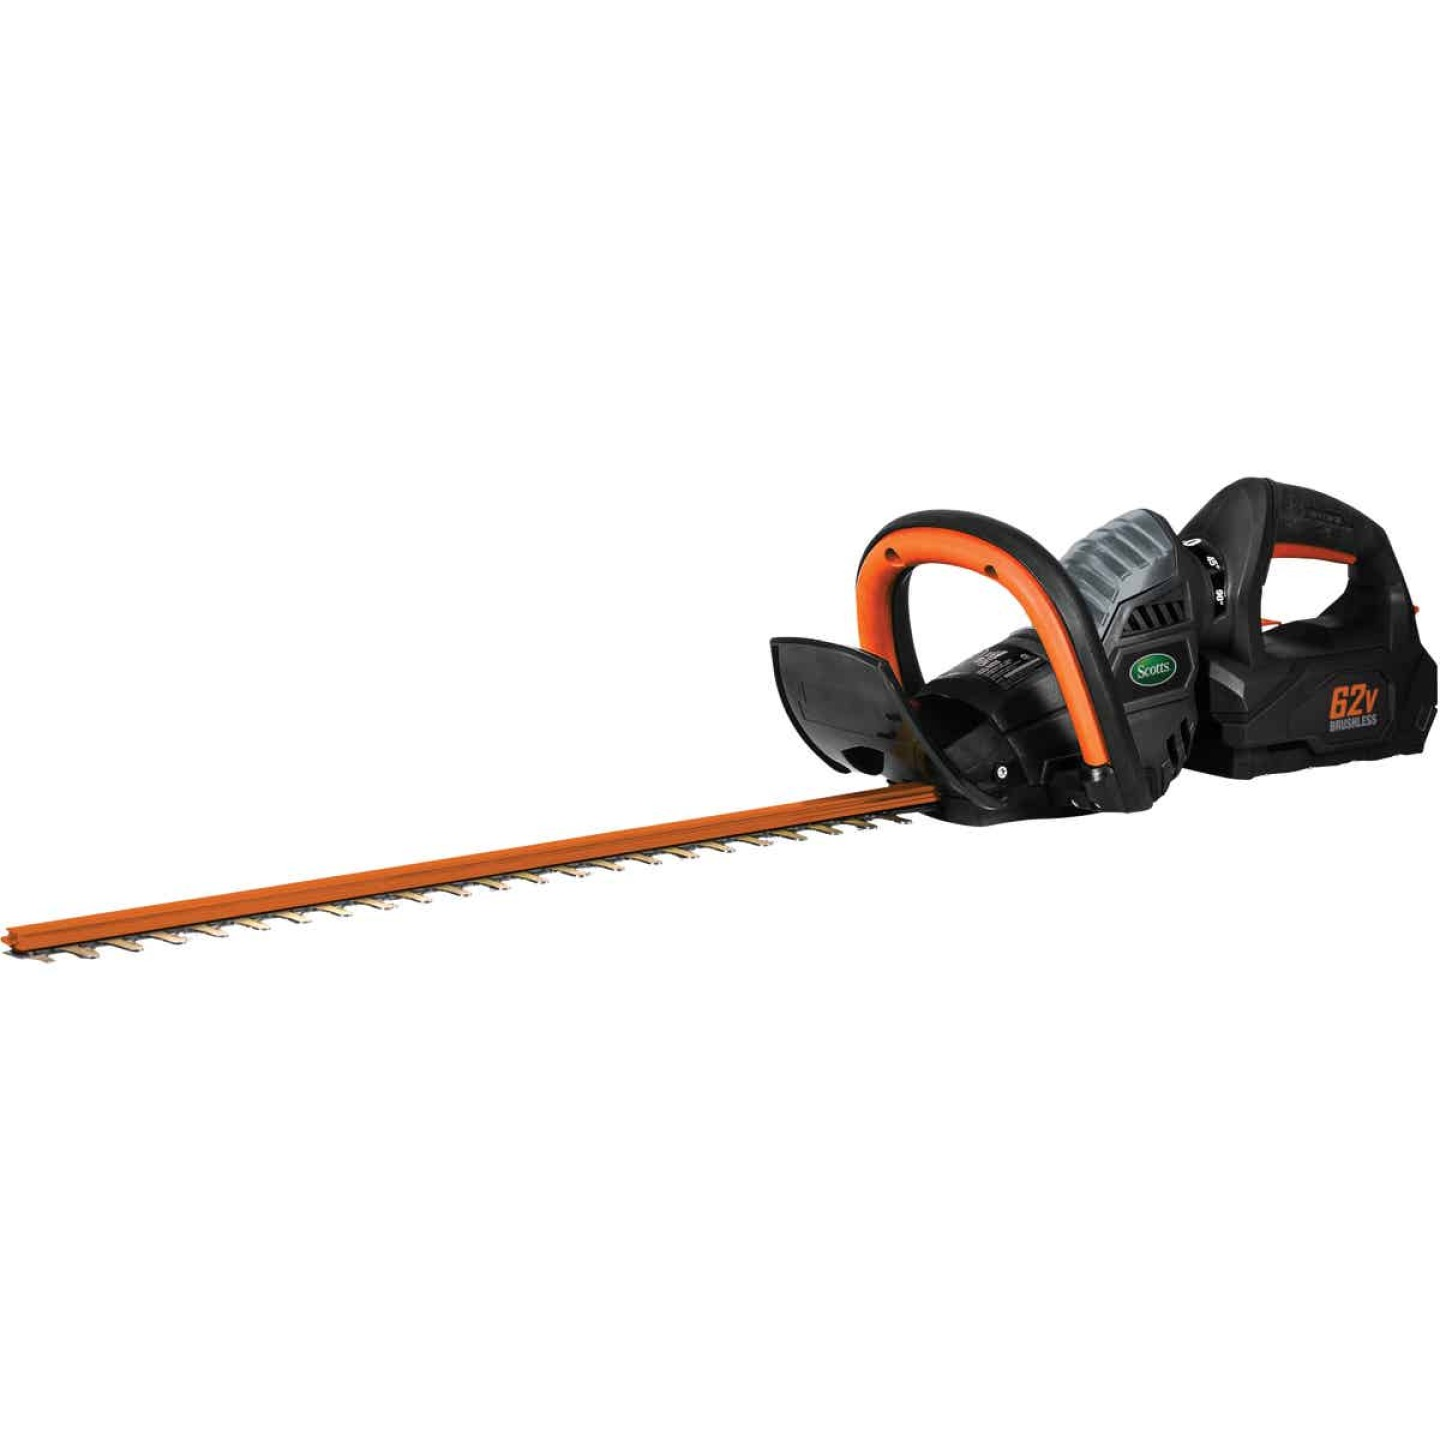 Scotts 24 In. 62V Lithium Ion Cordless Hedge Trimmer Image 1